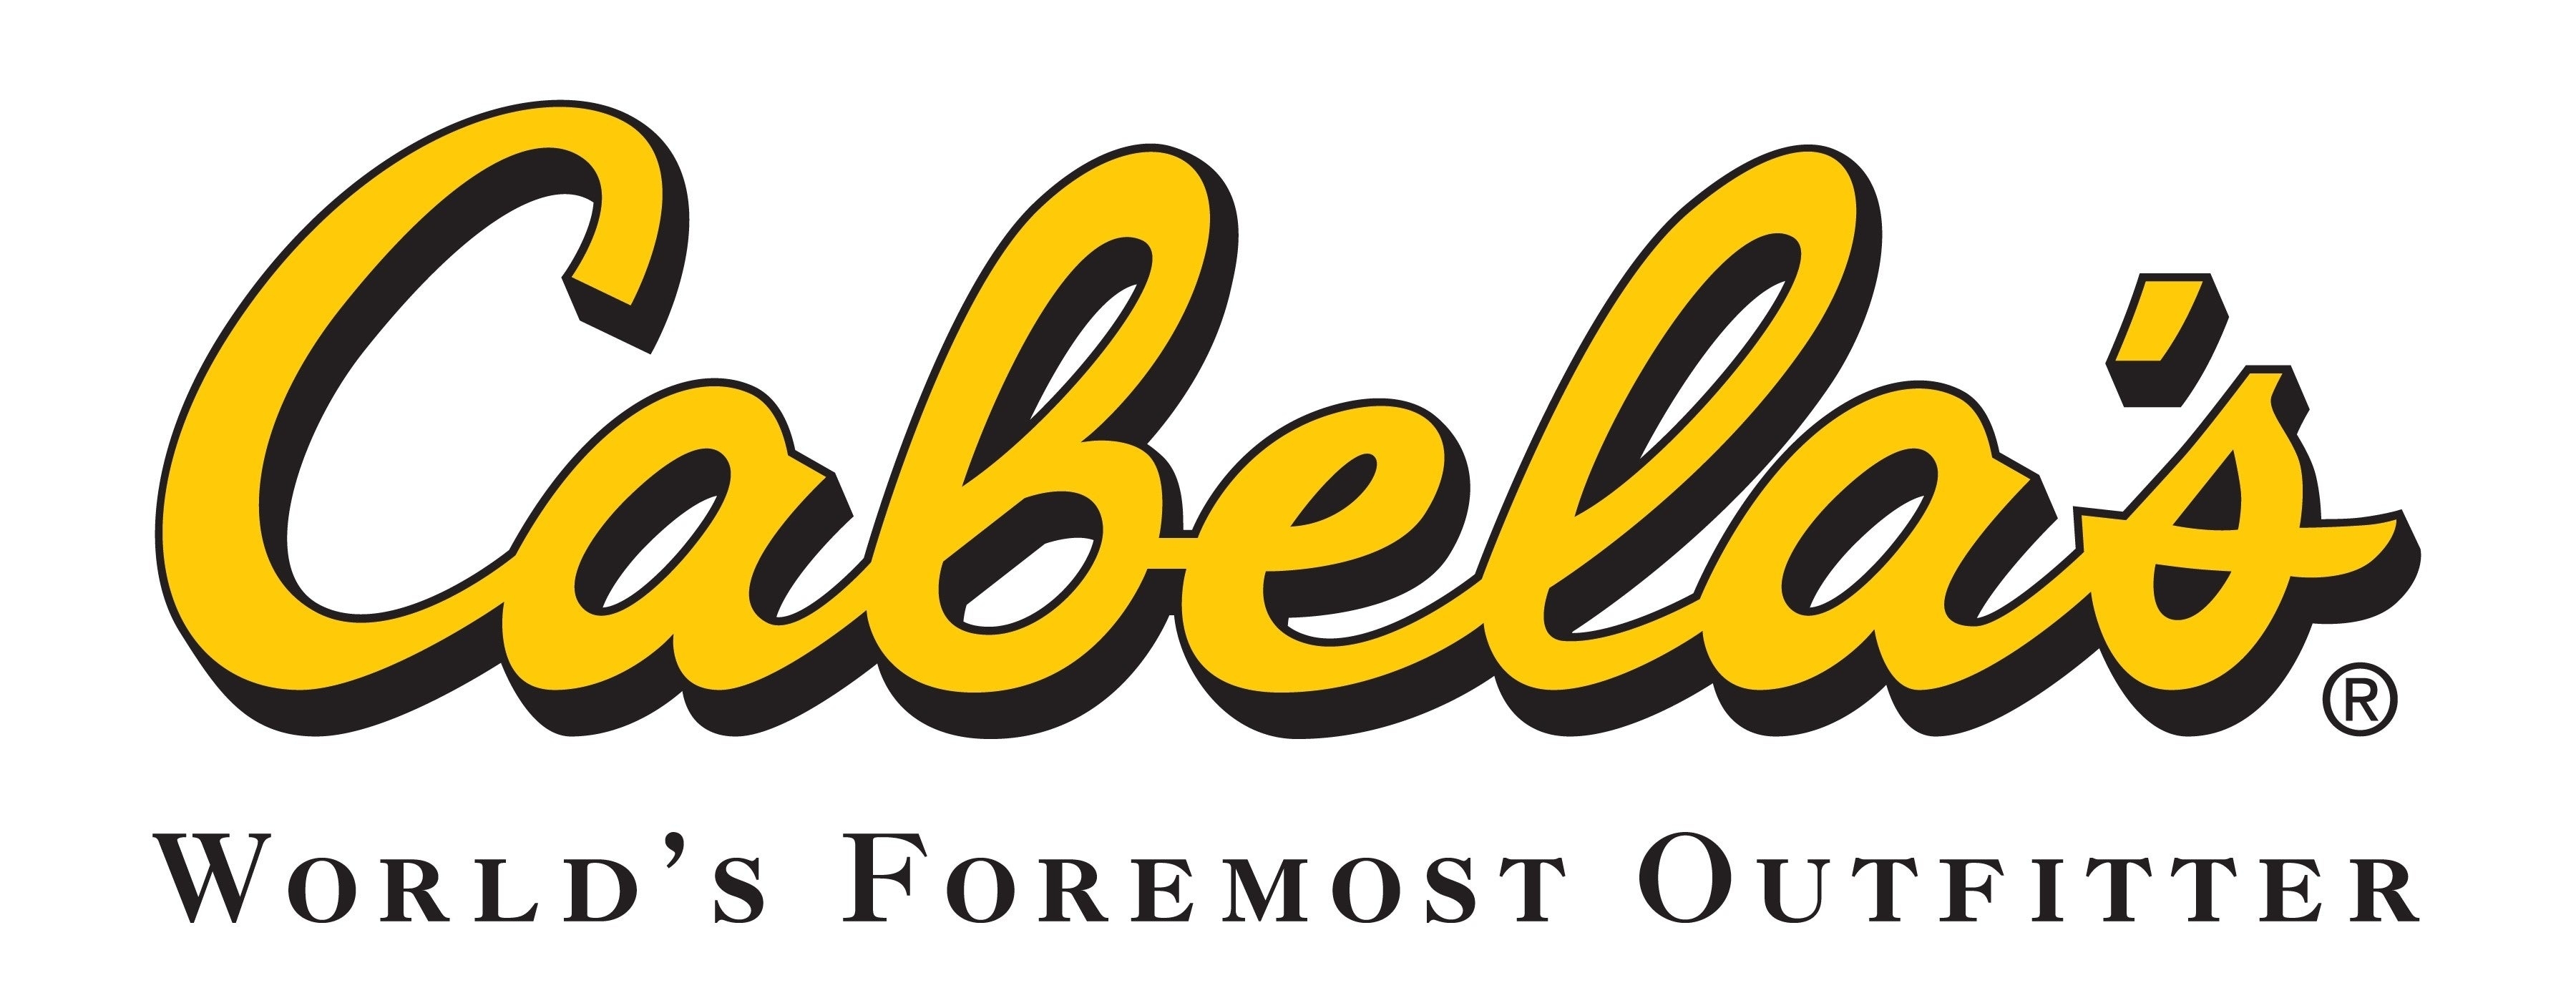 Cabelas Stock Jumps On Acquisition By Bass Pro Shops The Motley Fool